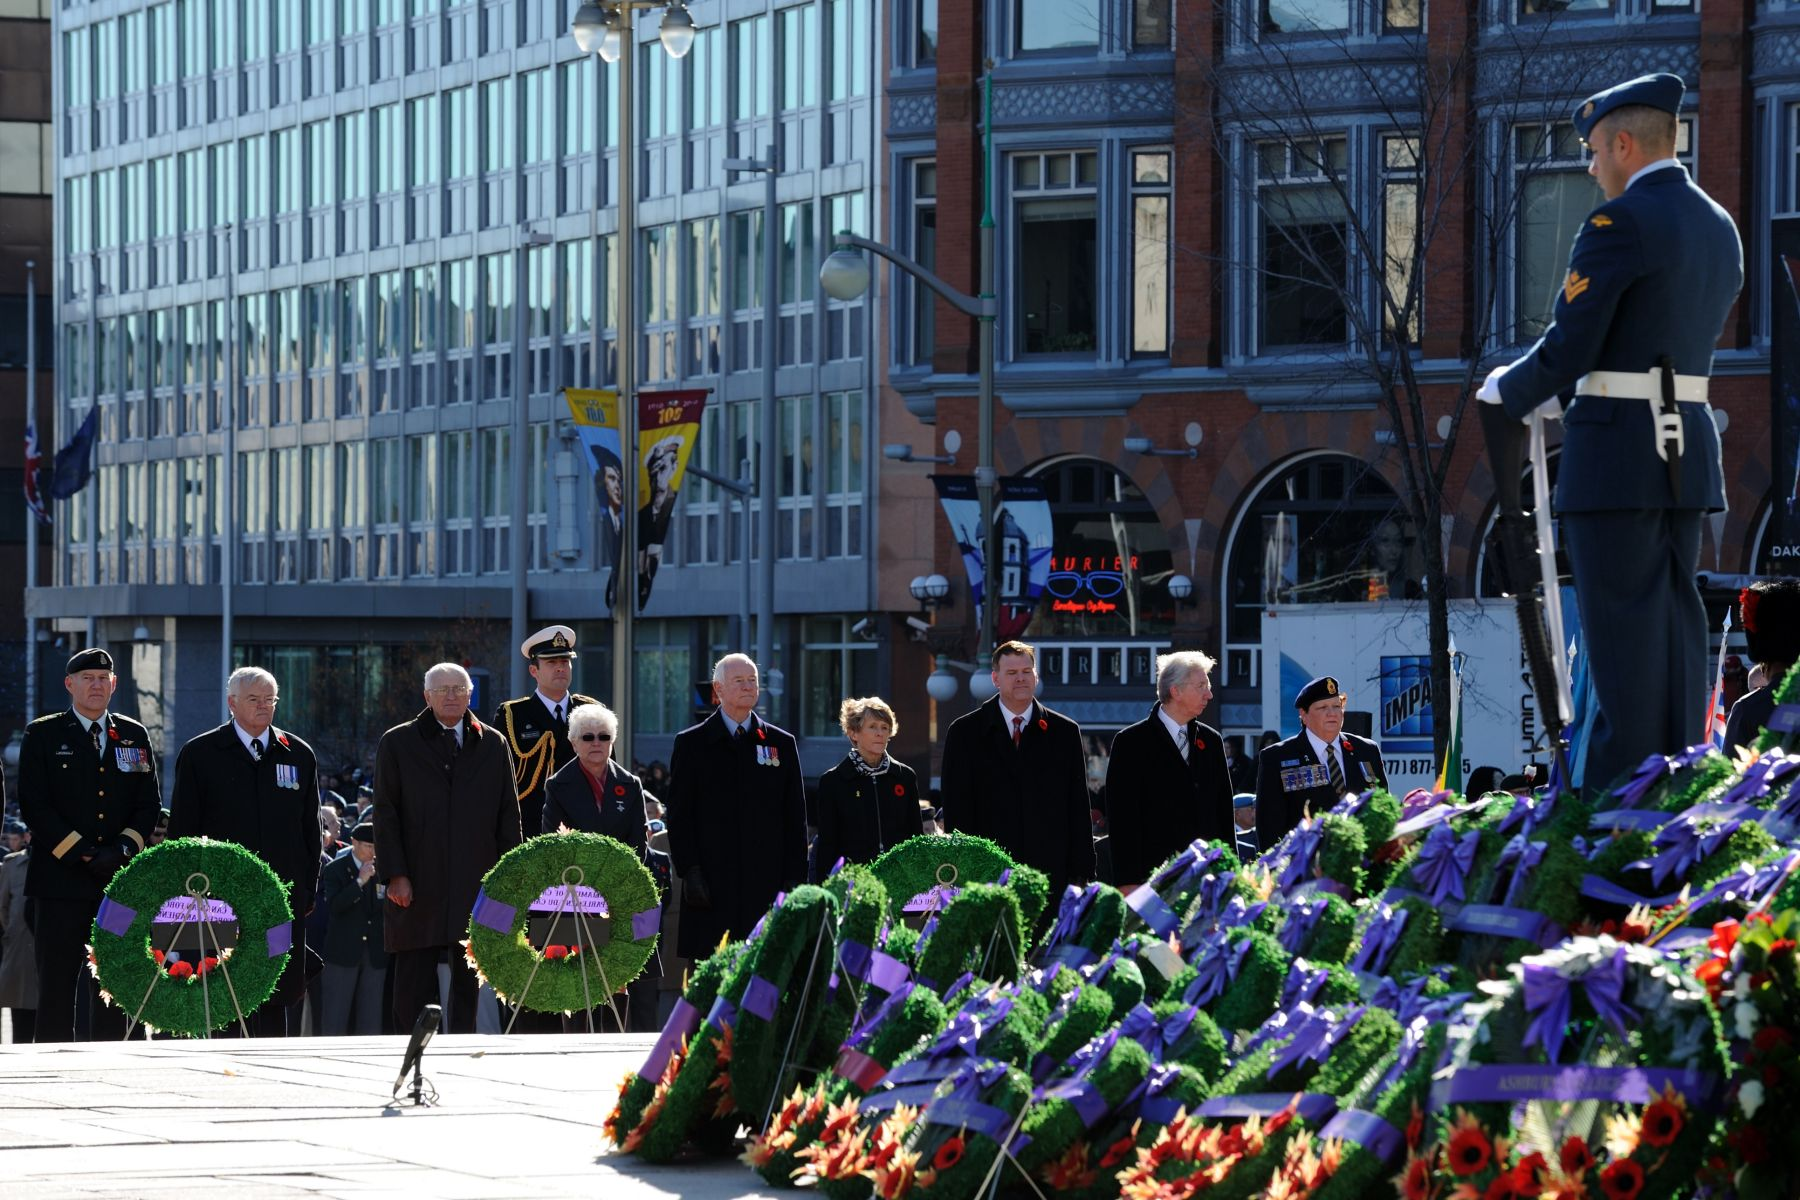 The Right Honourable David Johnston and Mrs Sharon Johnston participated in their first National Remembrance Day Ceremony since he became Governor General.